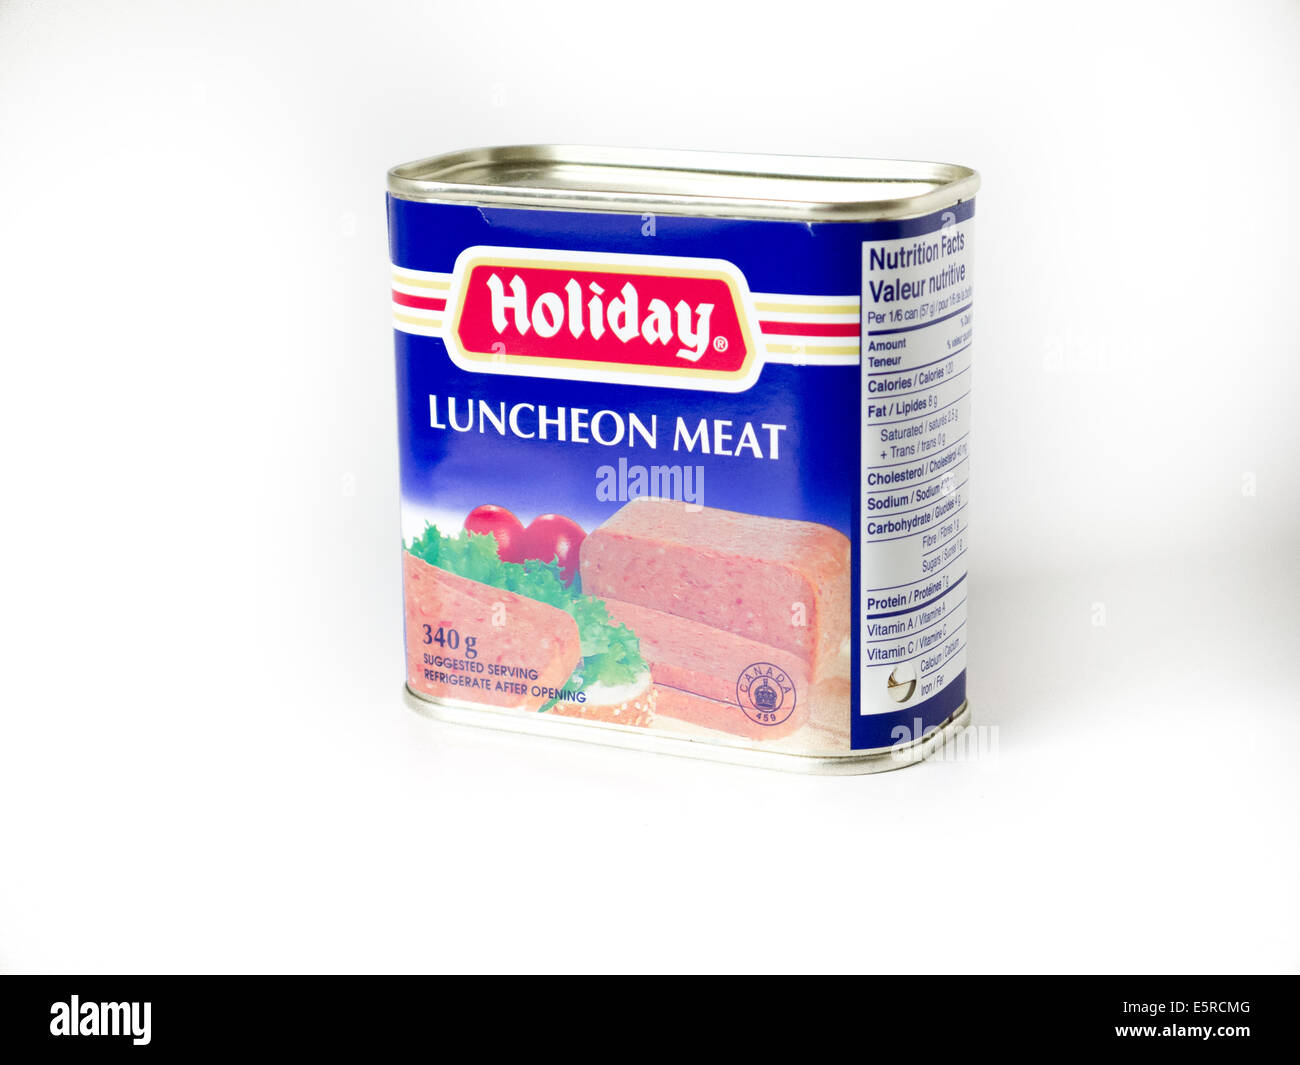 luncheon meat spam can - Stock Image